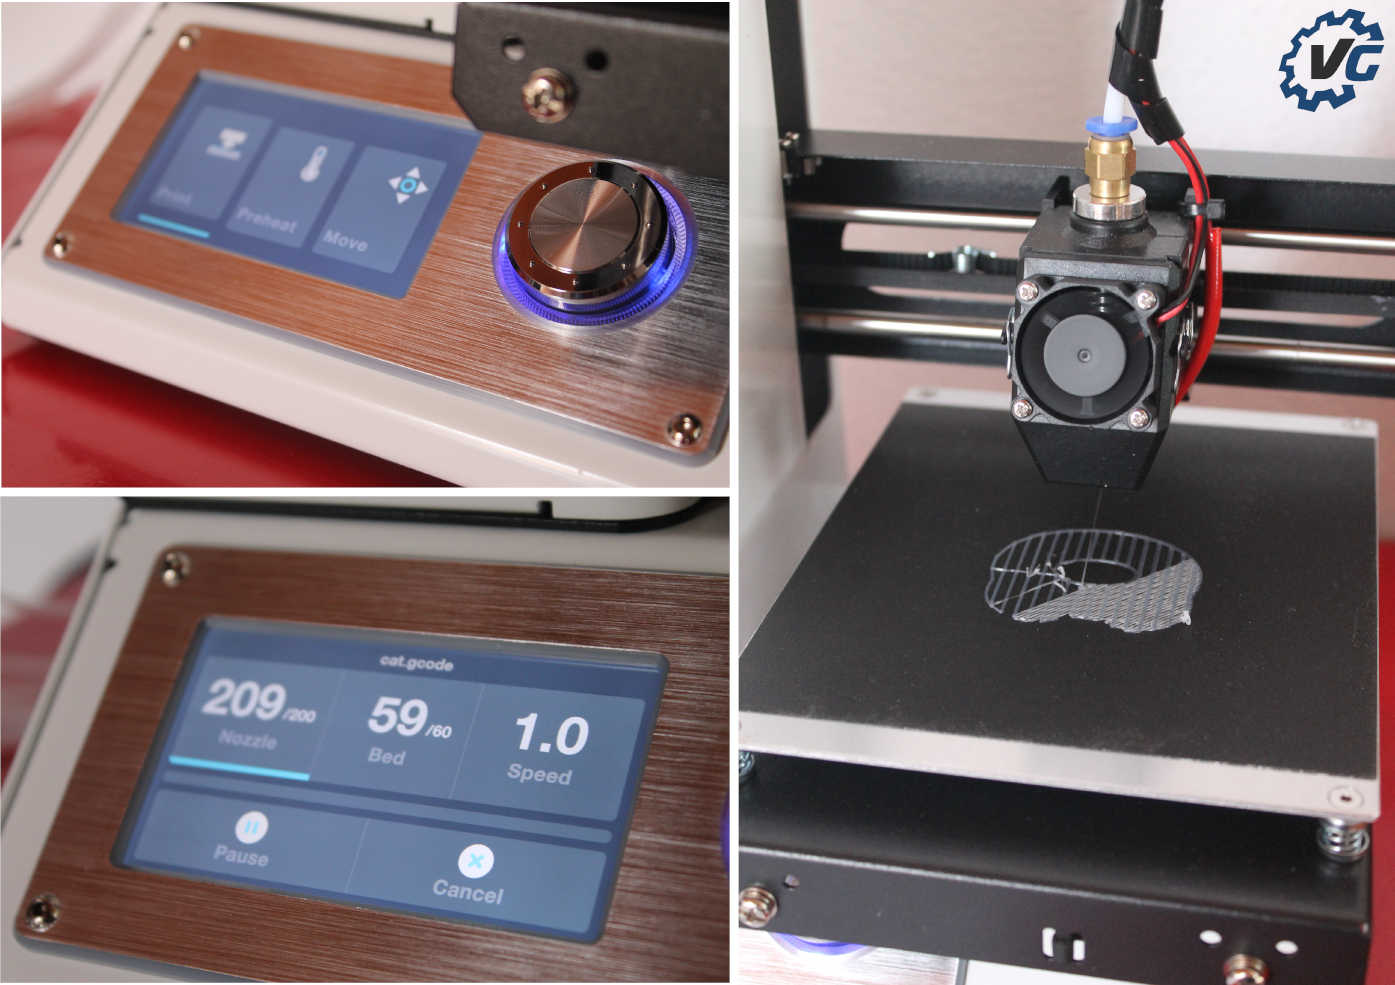 monoprice select mini impression